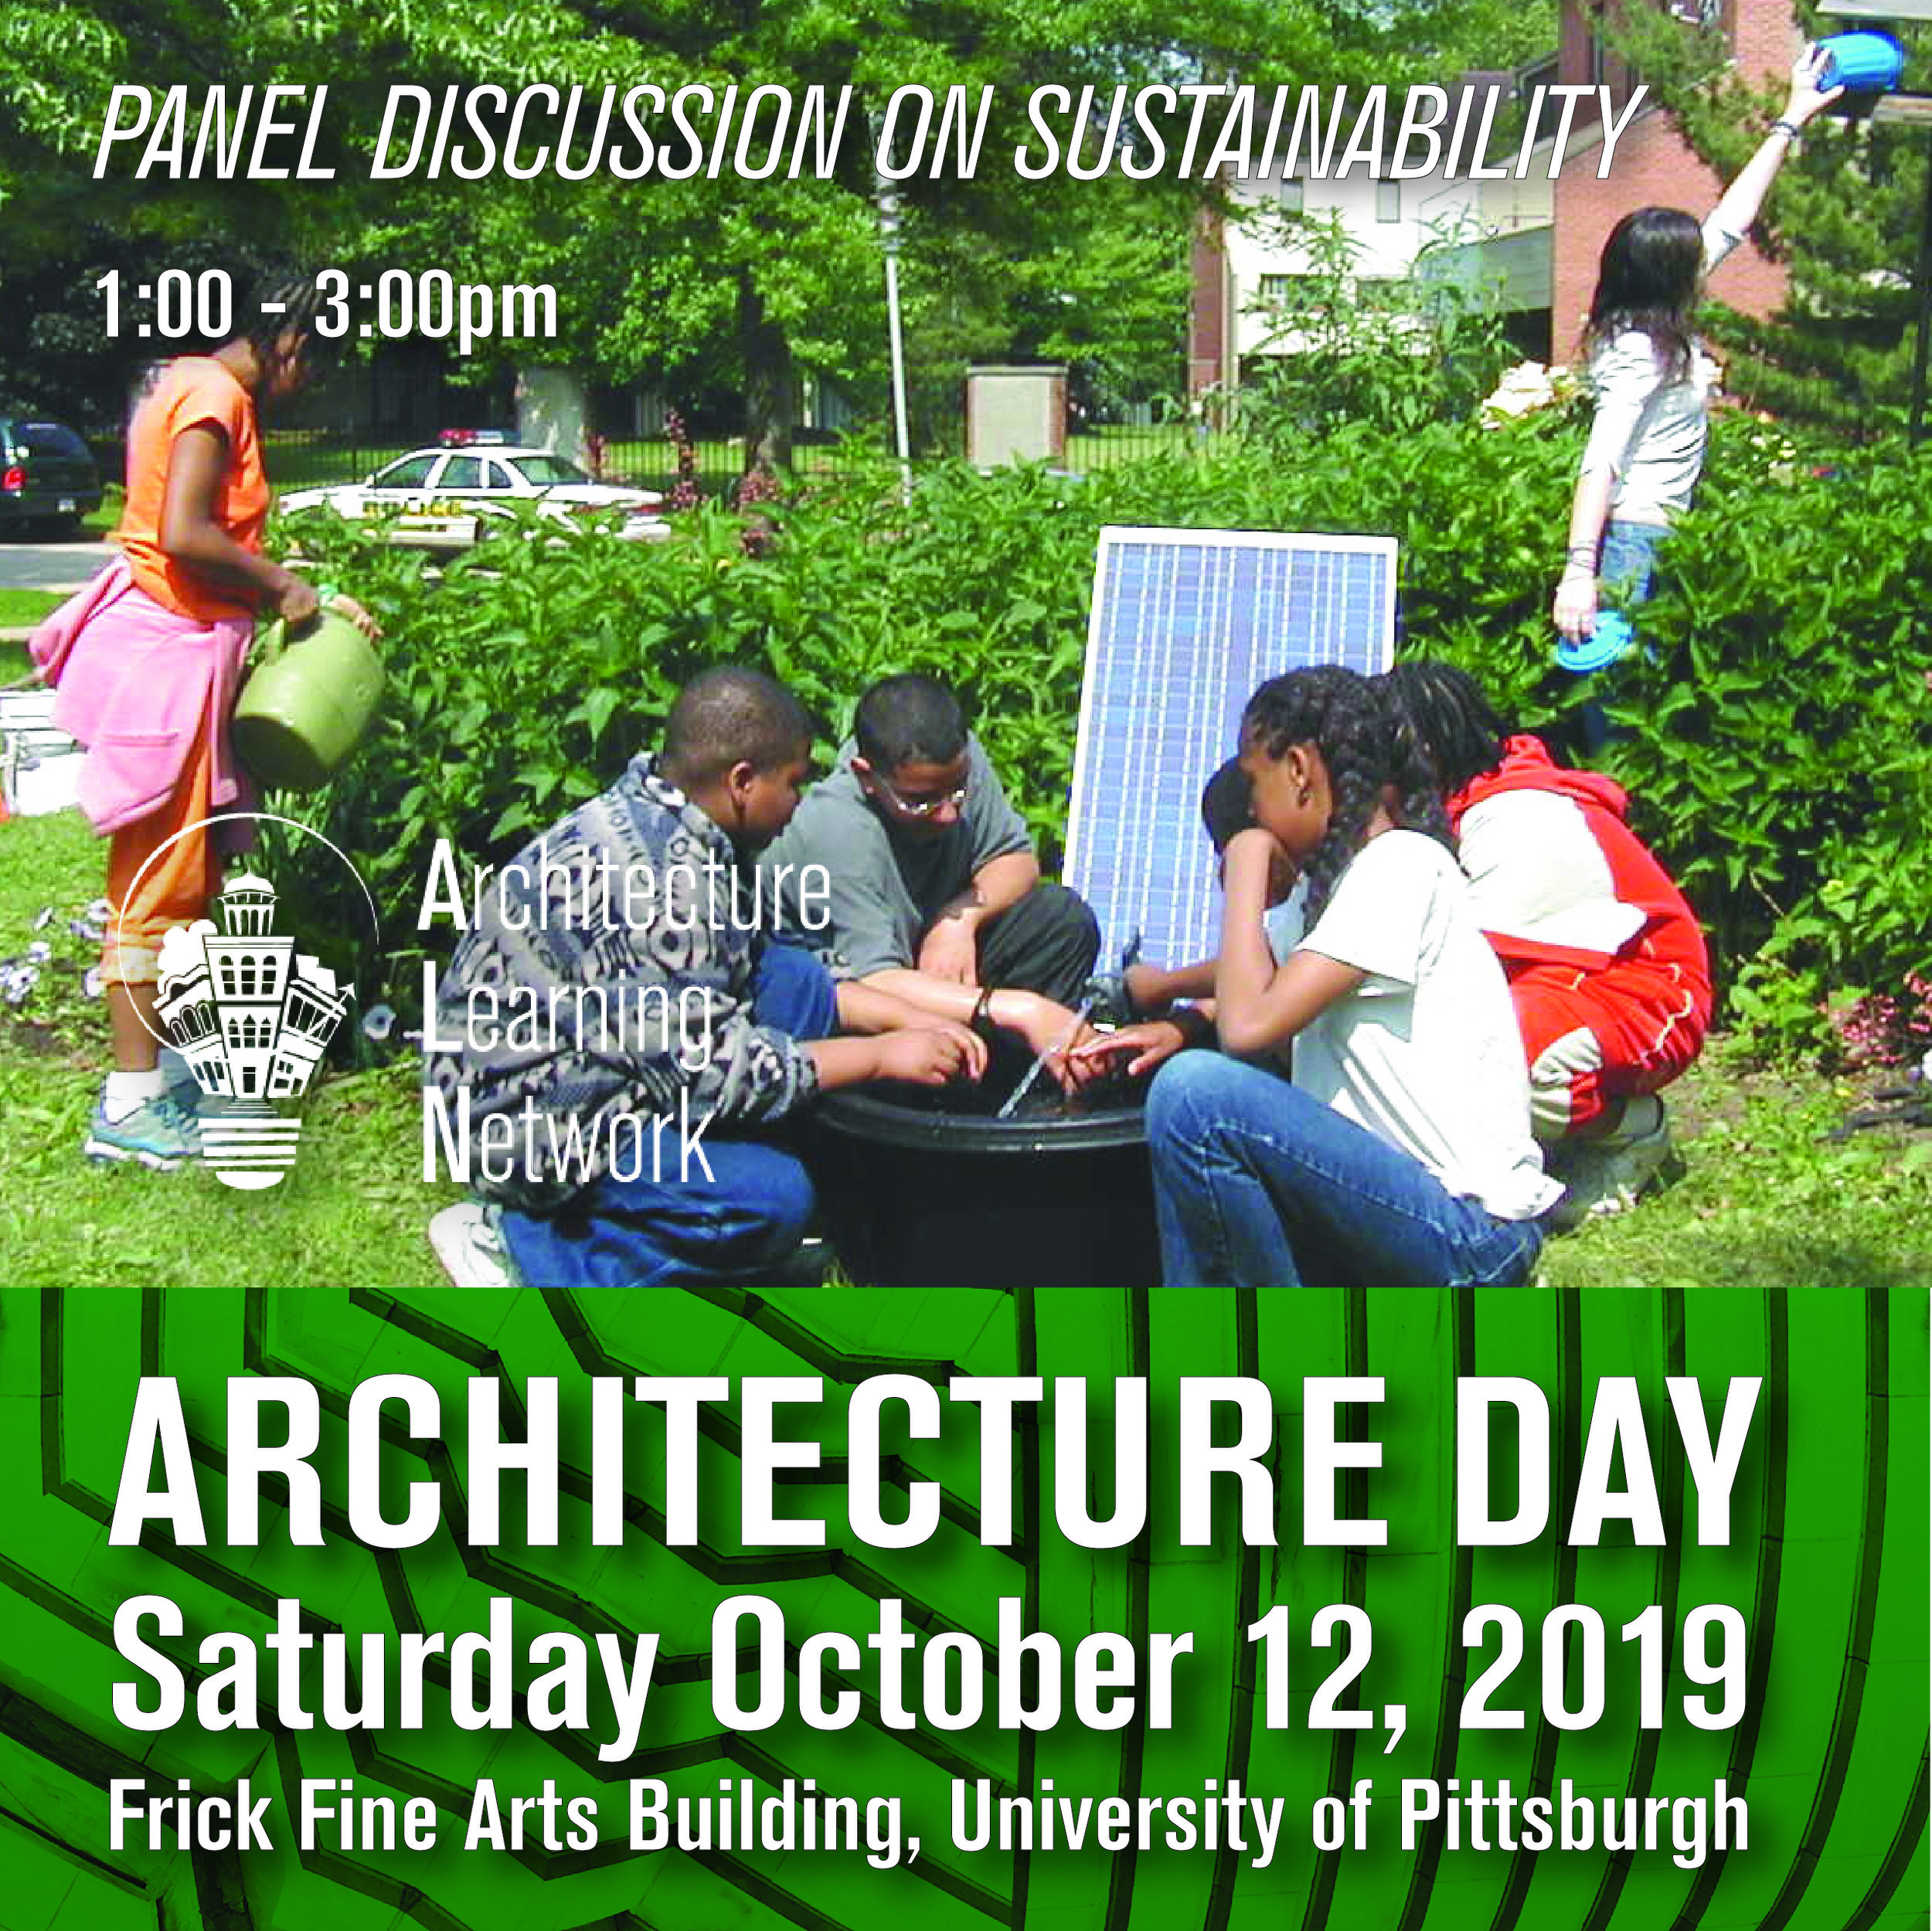 Panel Discussion with experts on sustainability in architecture, 1:00-3:00pm